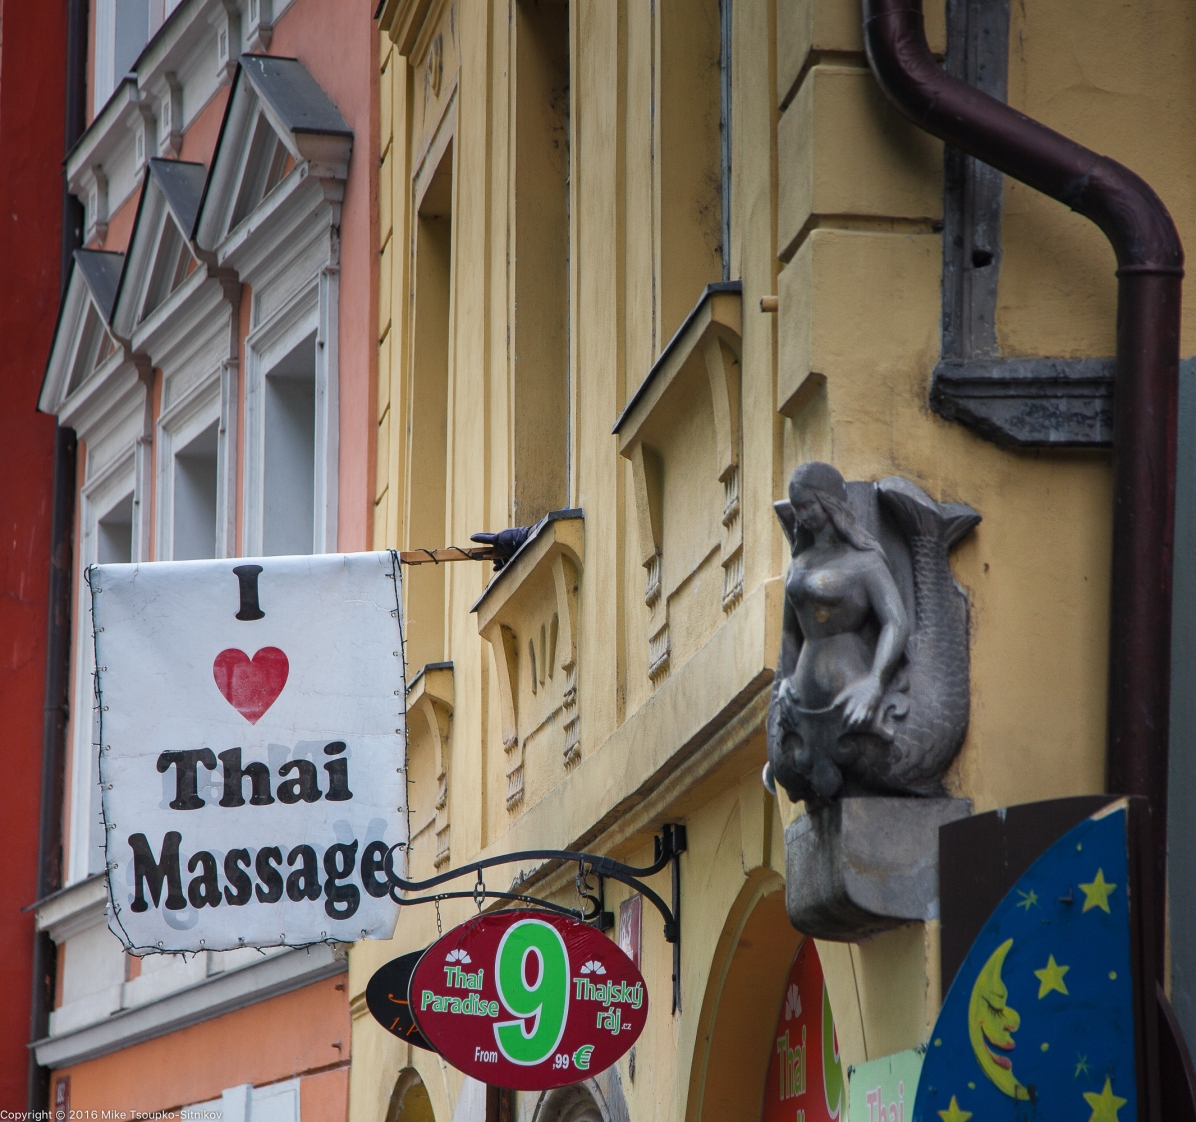 Prague. The Old Town.